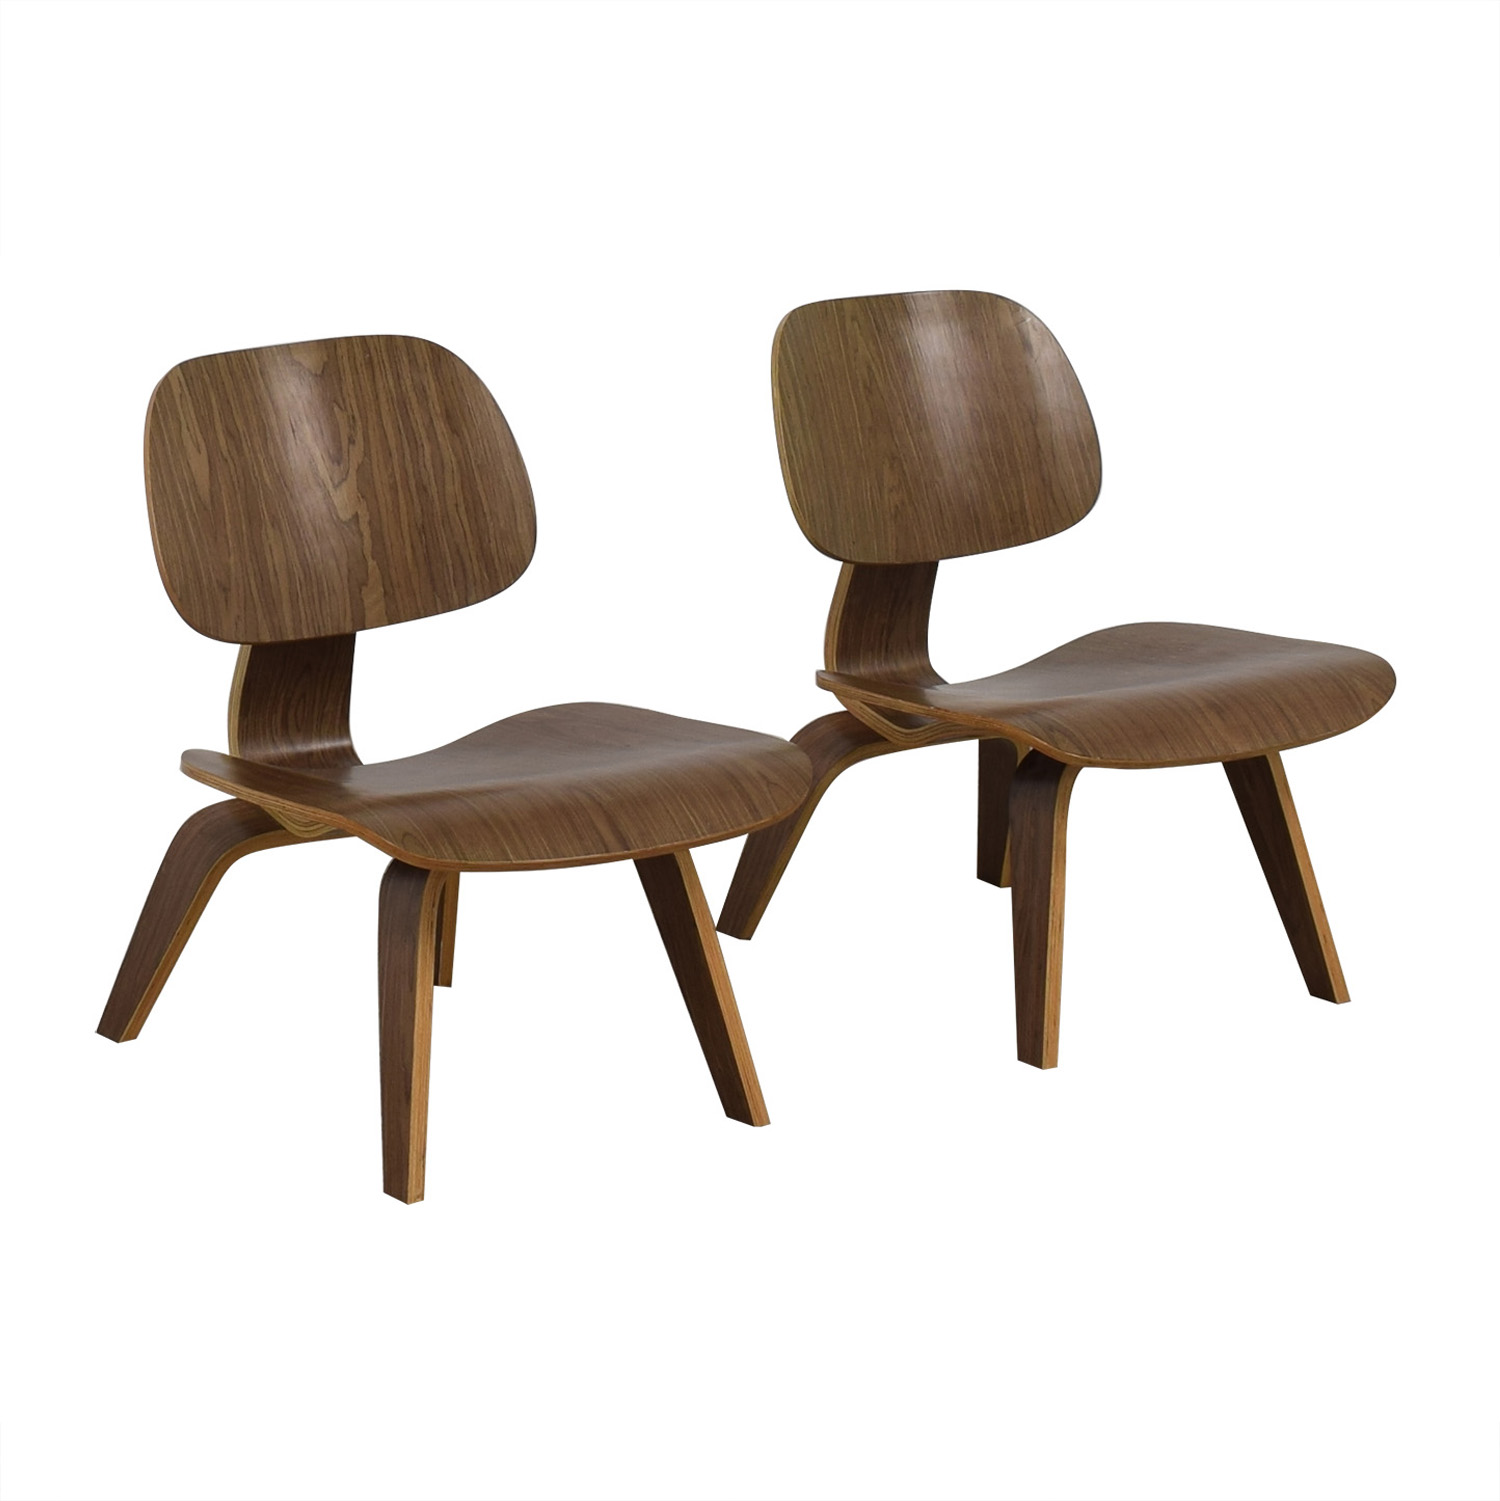 shop Modway Natural Fathom Plywood Dining Chairs Modway Dining Chairs